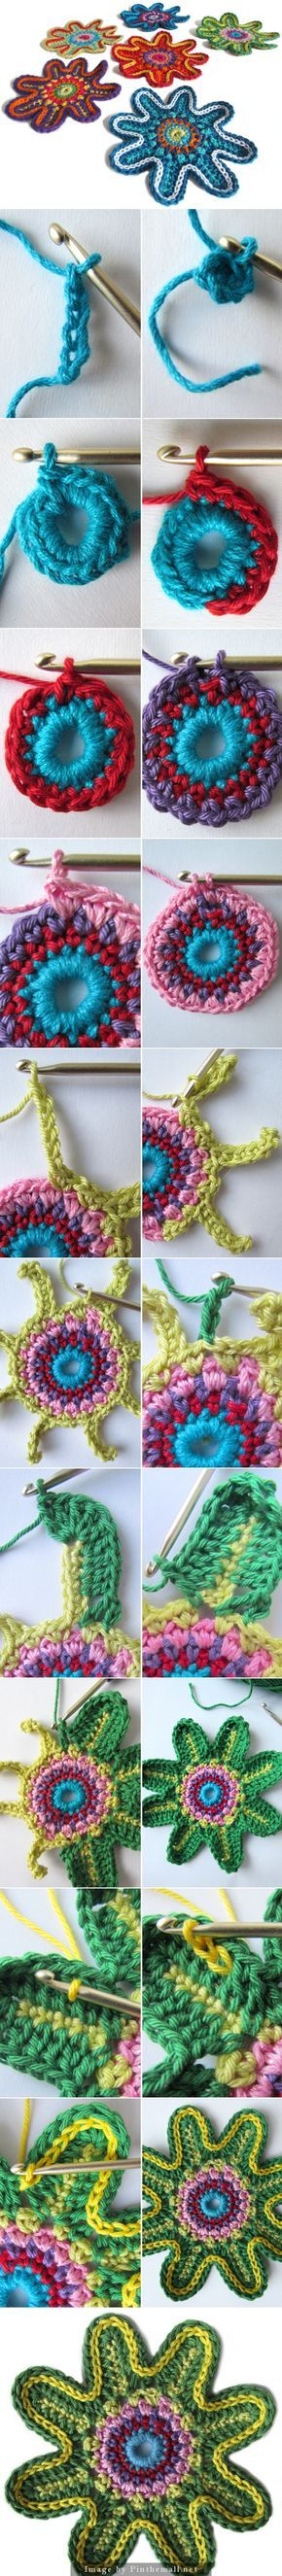 #Crochet #Tutorial for these wonderful flower motifs from a Dutch blog that has a translation. #KnittingGuru http://www.pinterest.com/KnittingGuru Go to handwerkjuffie.blogspot.nl to get the exact directions.""